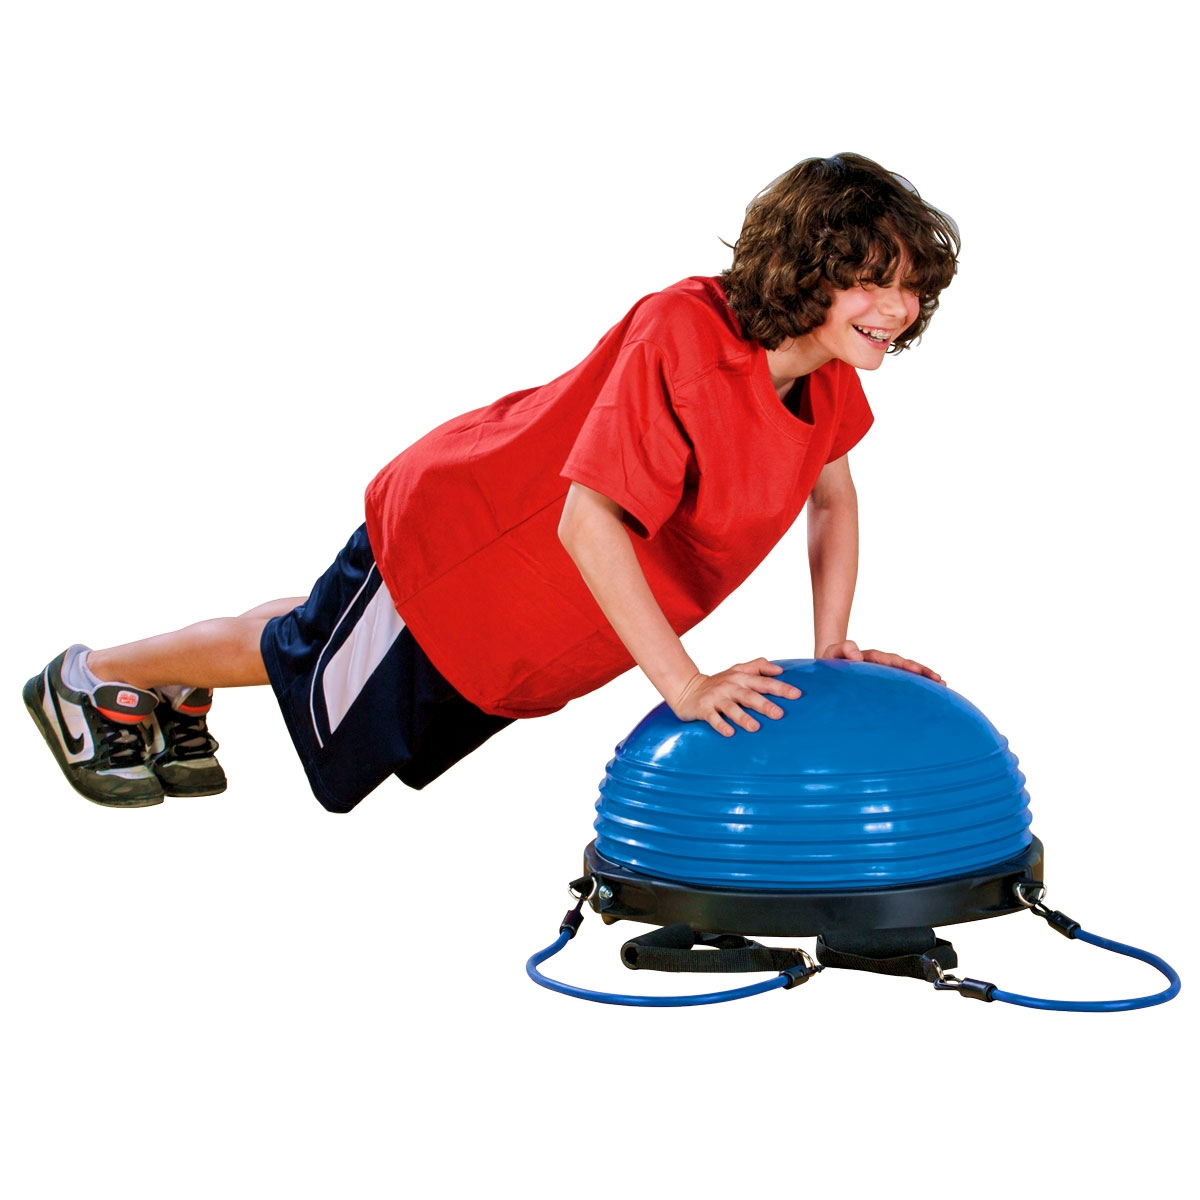 boy doing a push up on blue balance dome trainer